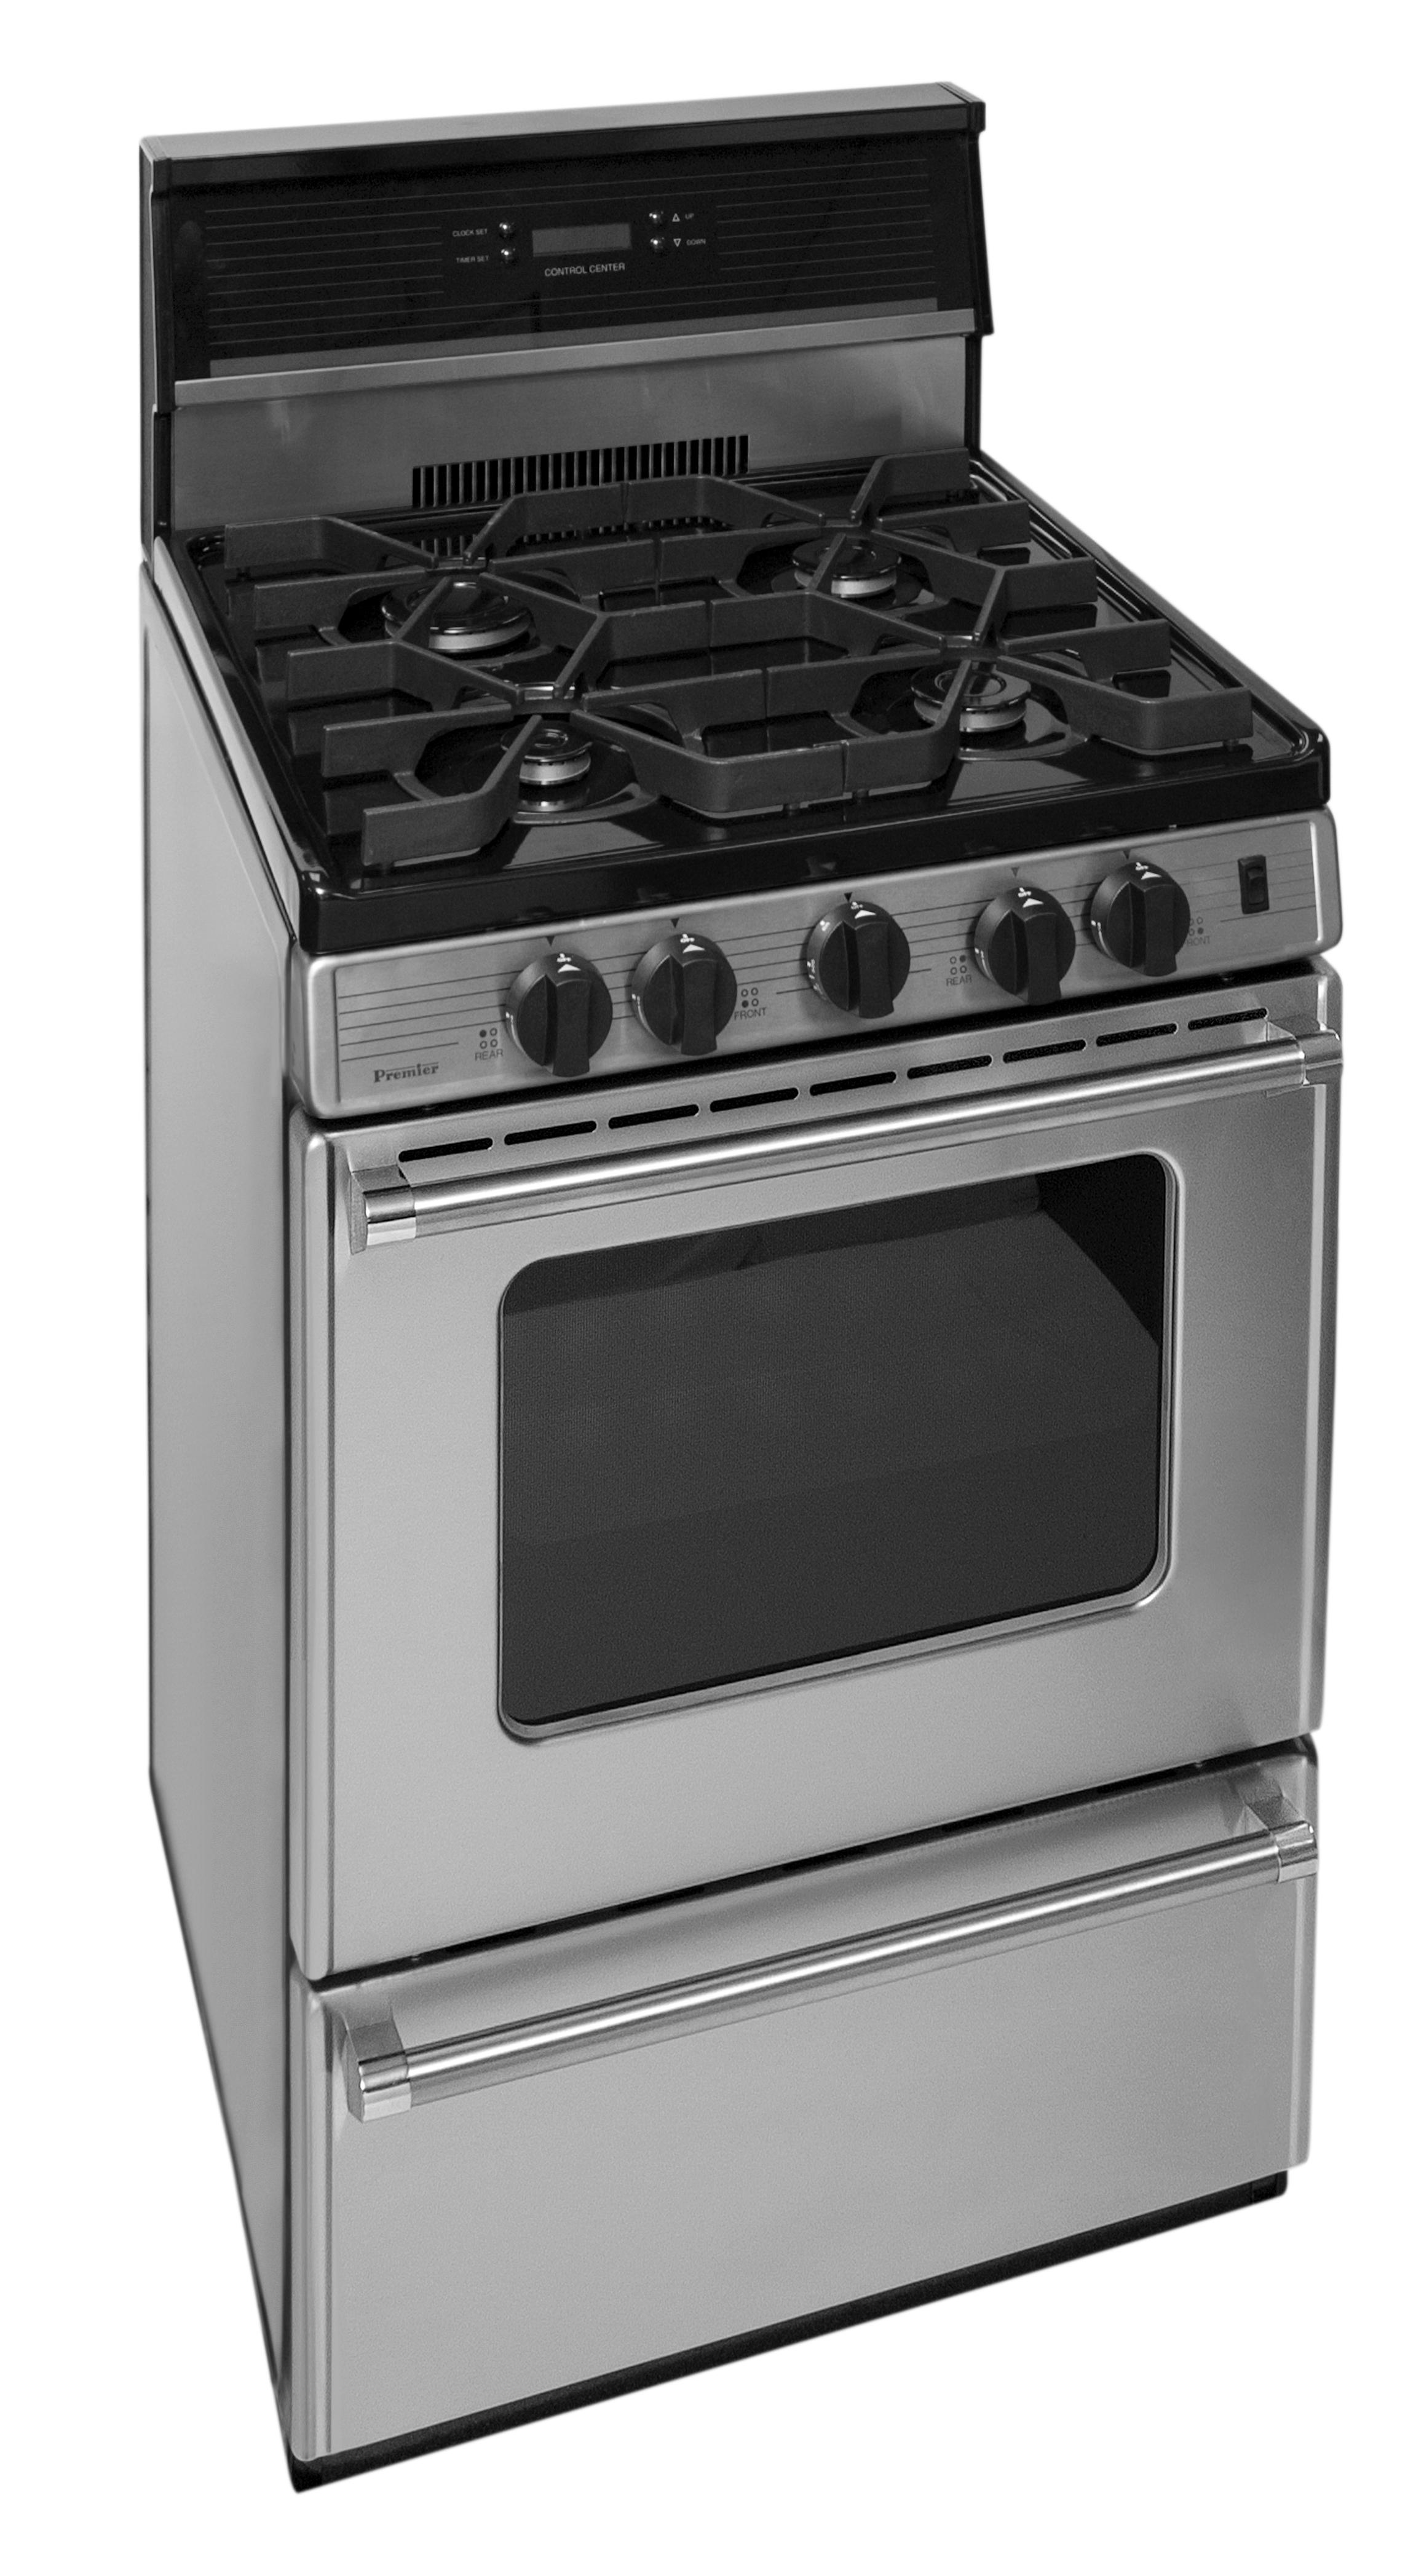 24 in. ProSeries Freestanding Sealed Burner Gas Range in Stainless Steel